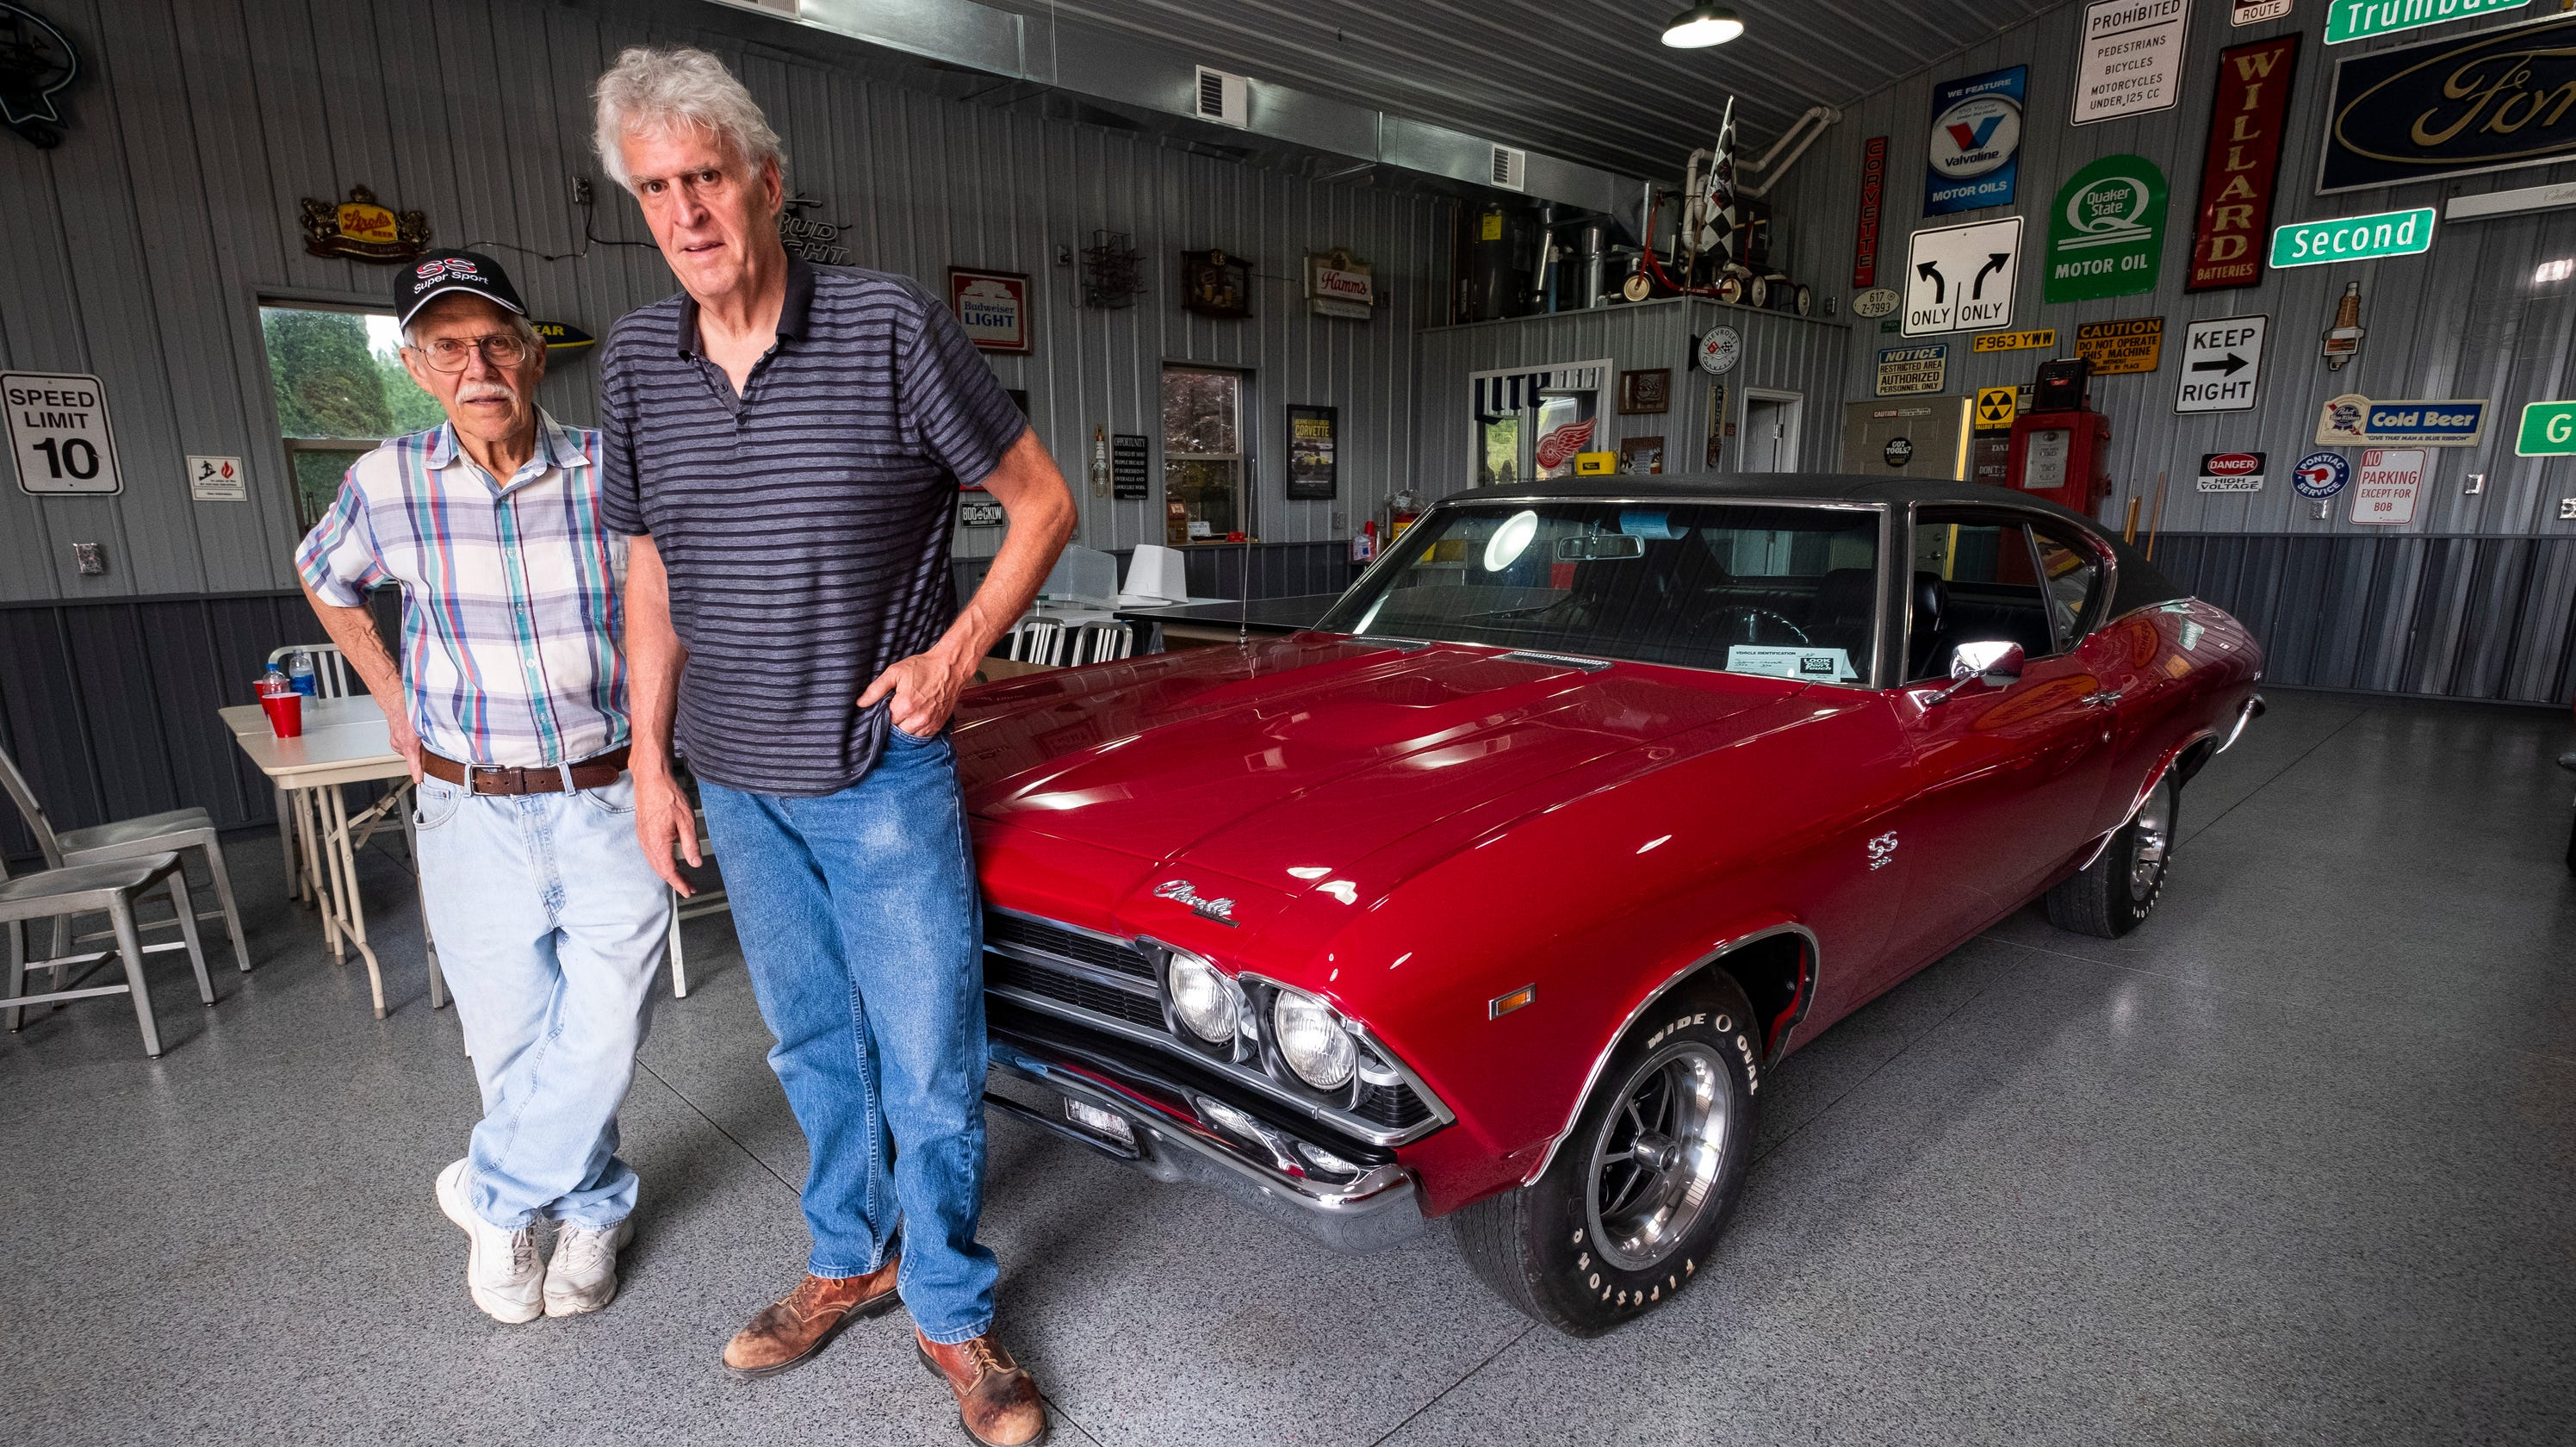 69 Chevelle embodies legacy of Detroit industrial arts class